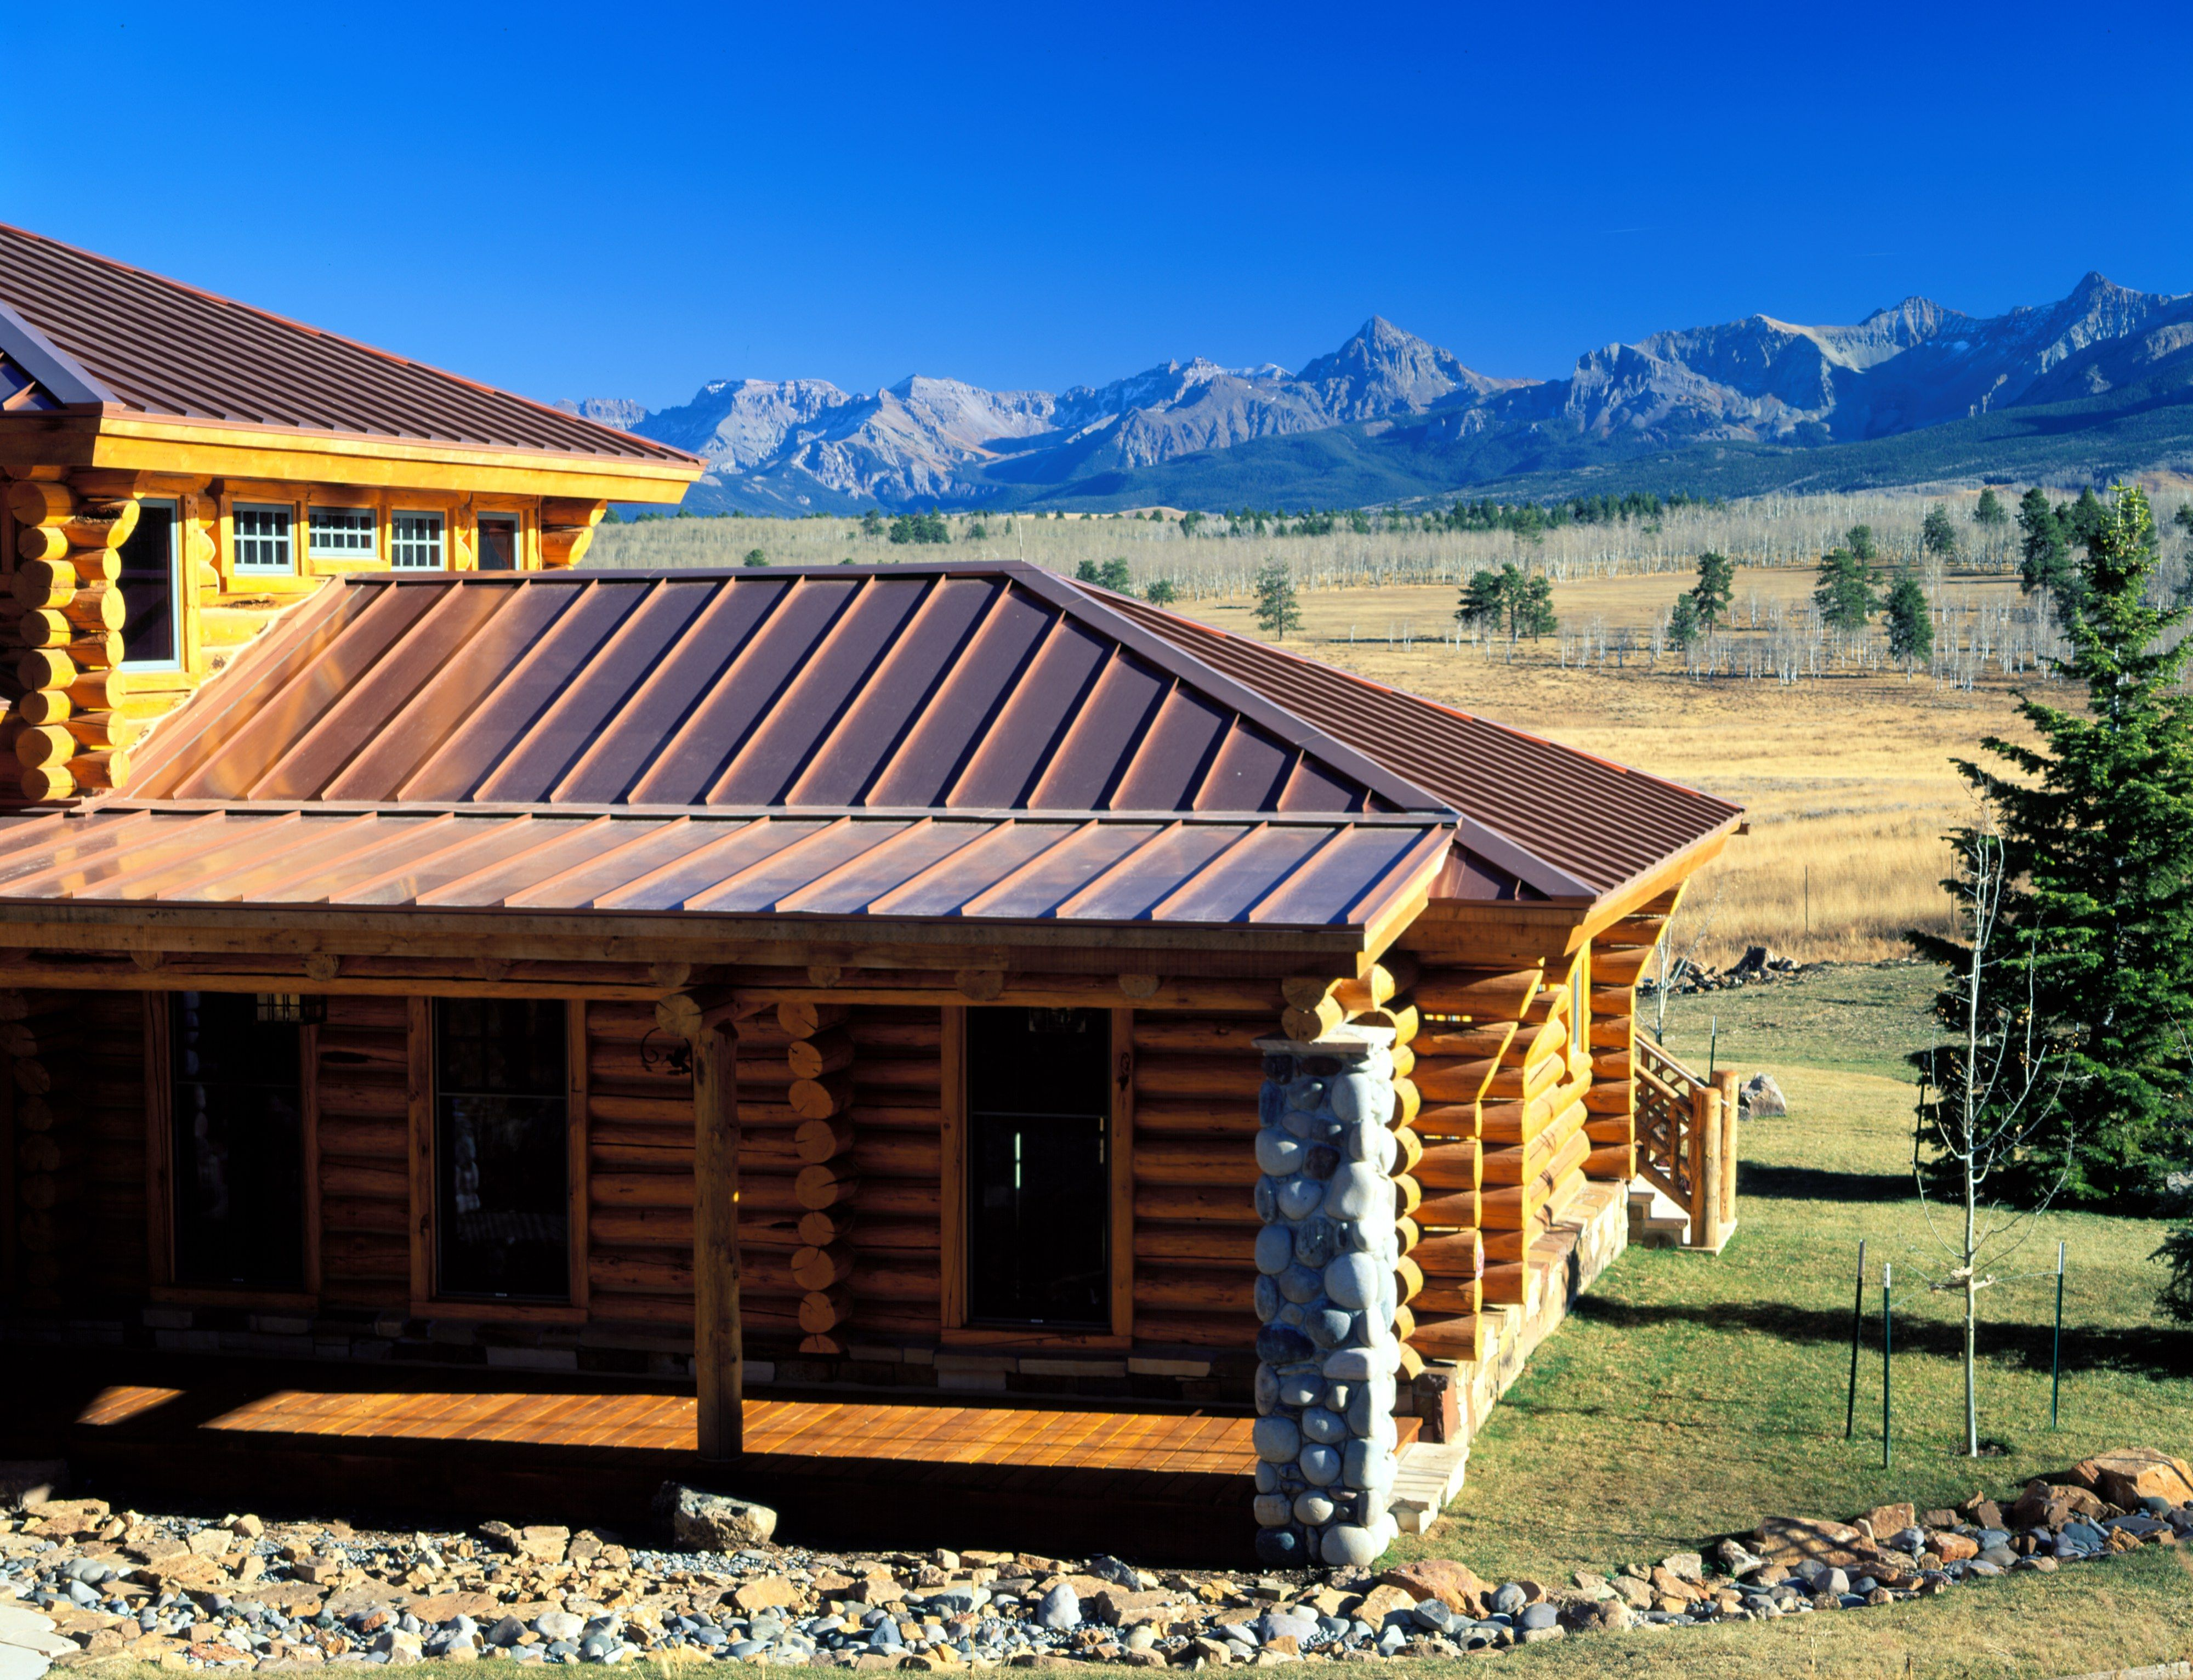 right homes kits mobile now green can cabins home dubldom log tiny magic under arched buy inhabitat affordable colorado cabin you prefab